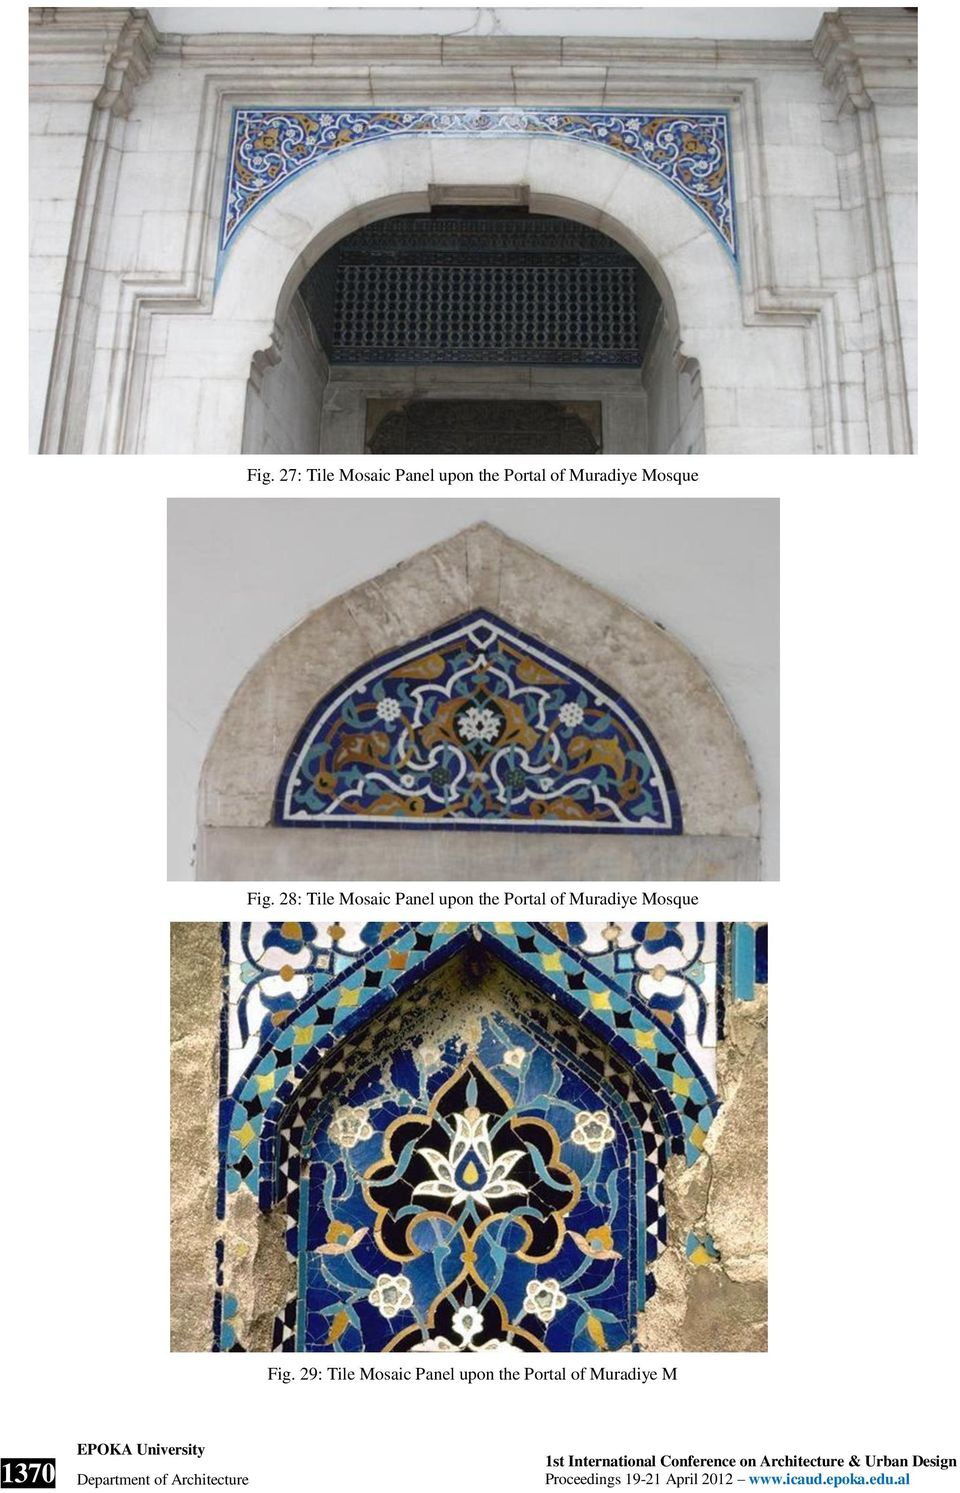 Fig. 29: Tile Mosaic Panel upon the Portal of Muradiye M 1370